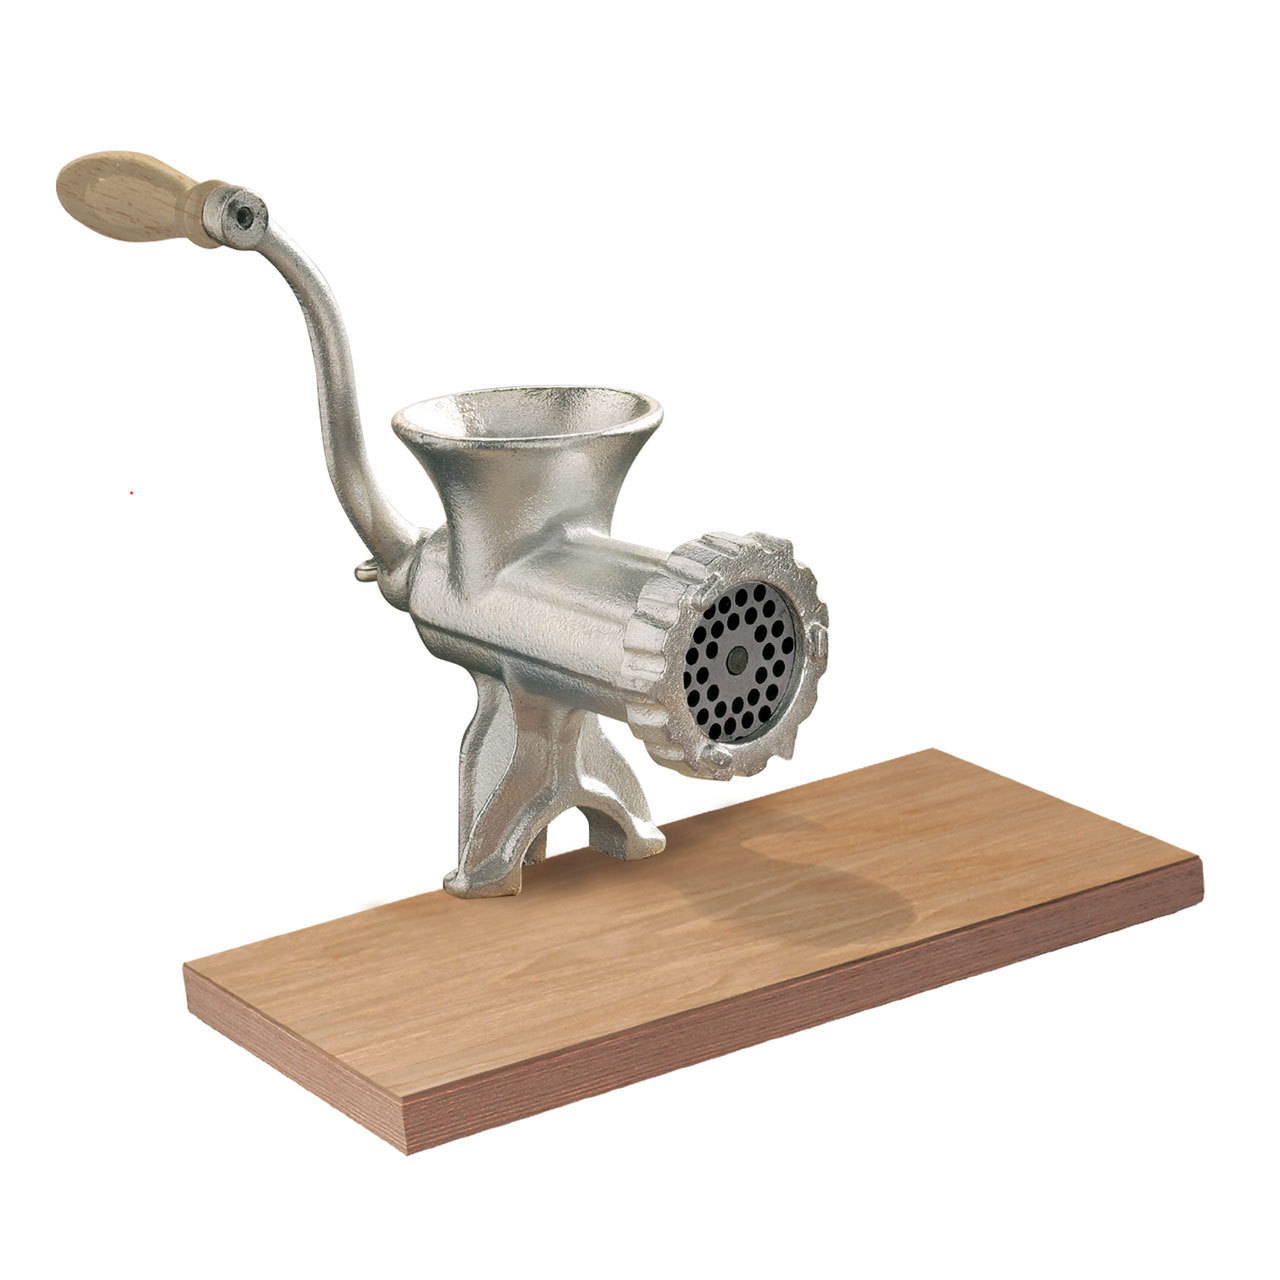 Hand Meat Grinders For Home Use ~ Heavy duty hand operated meat grinder metal kitchen